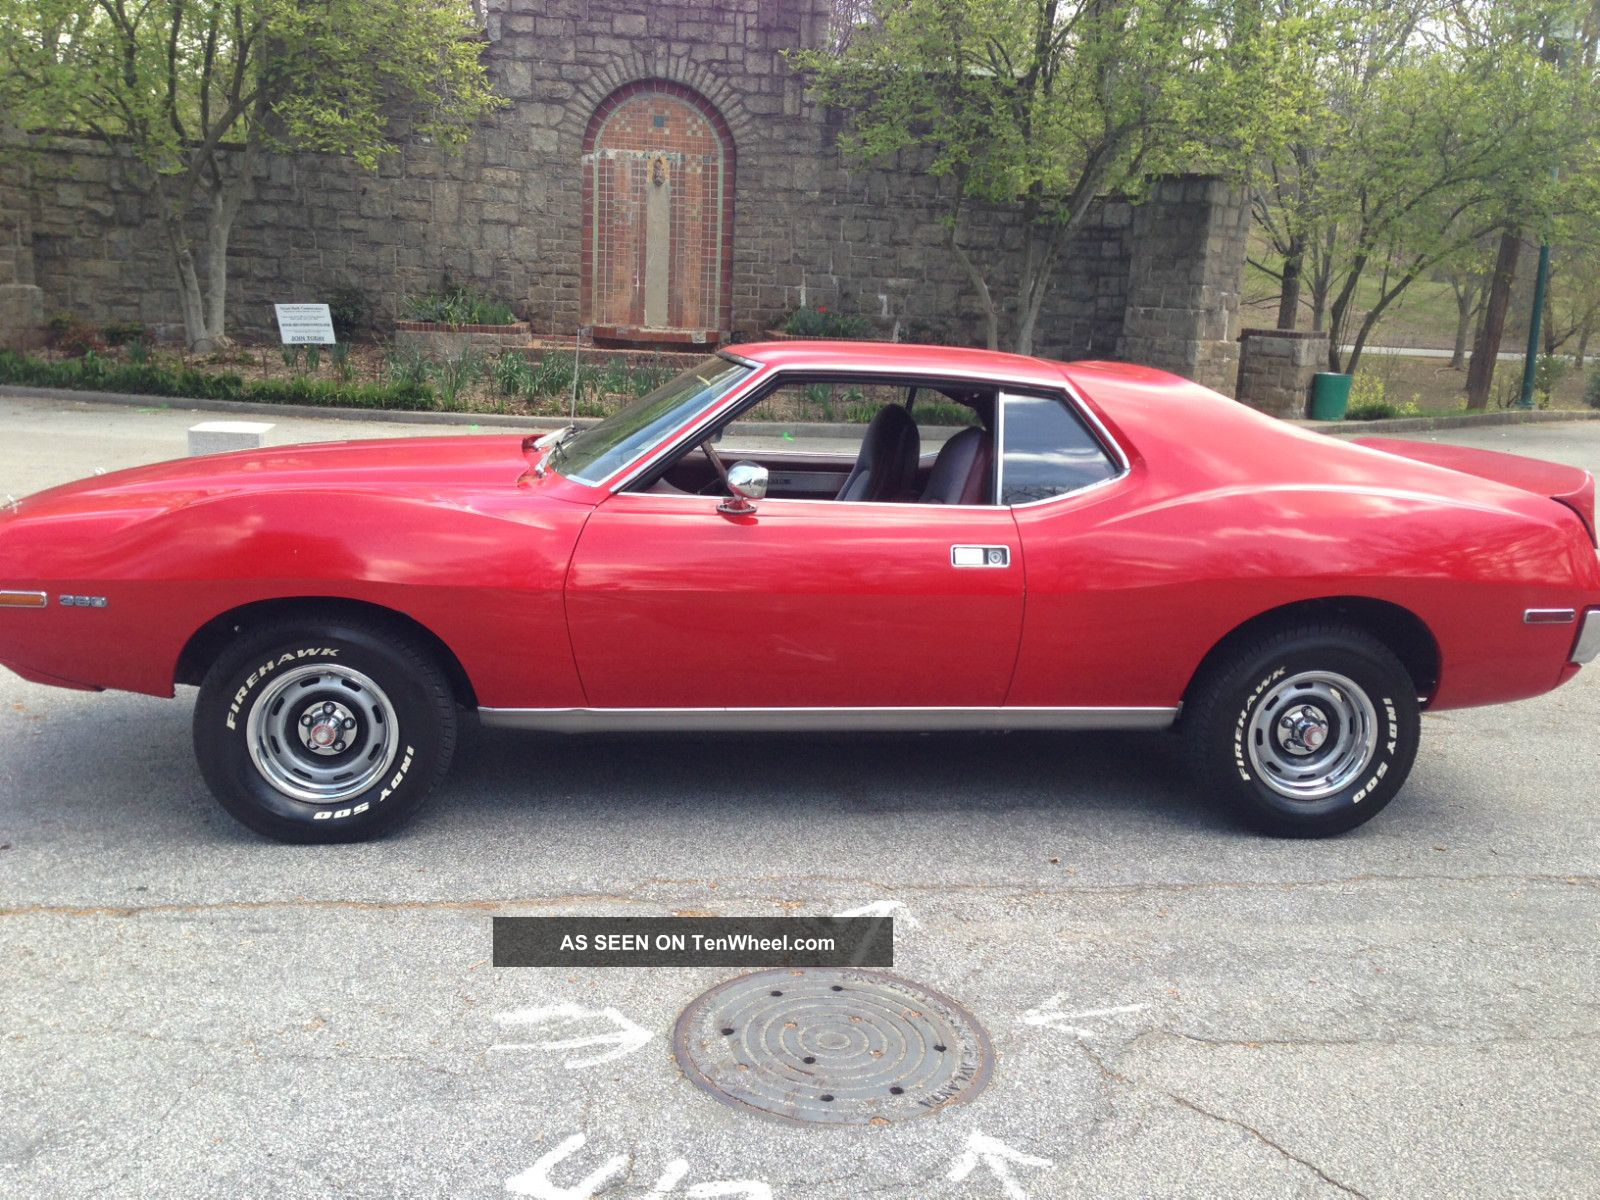 1971 Amc Javelin Amx - - Rare - - AMC photo